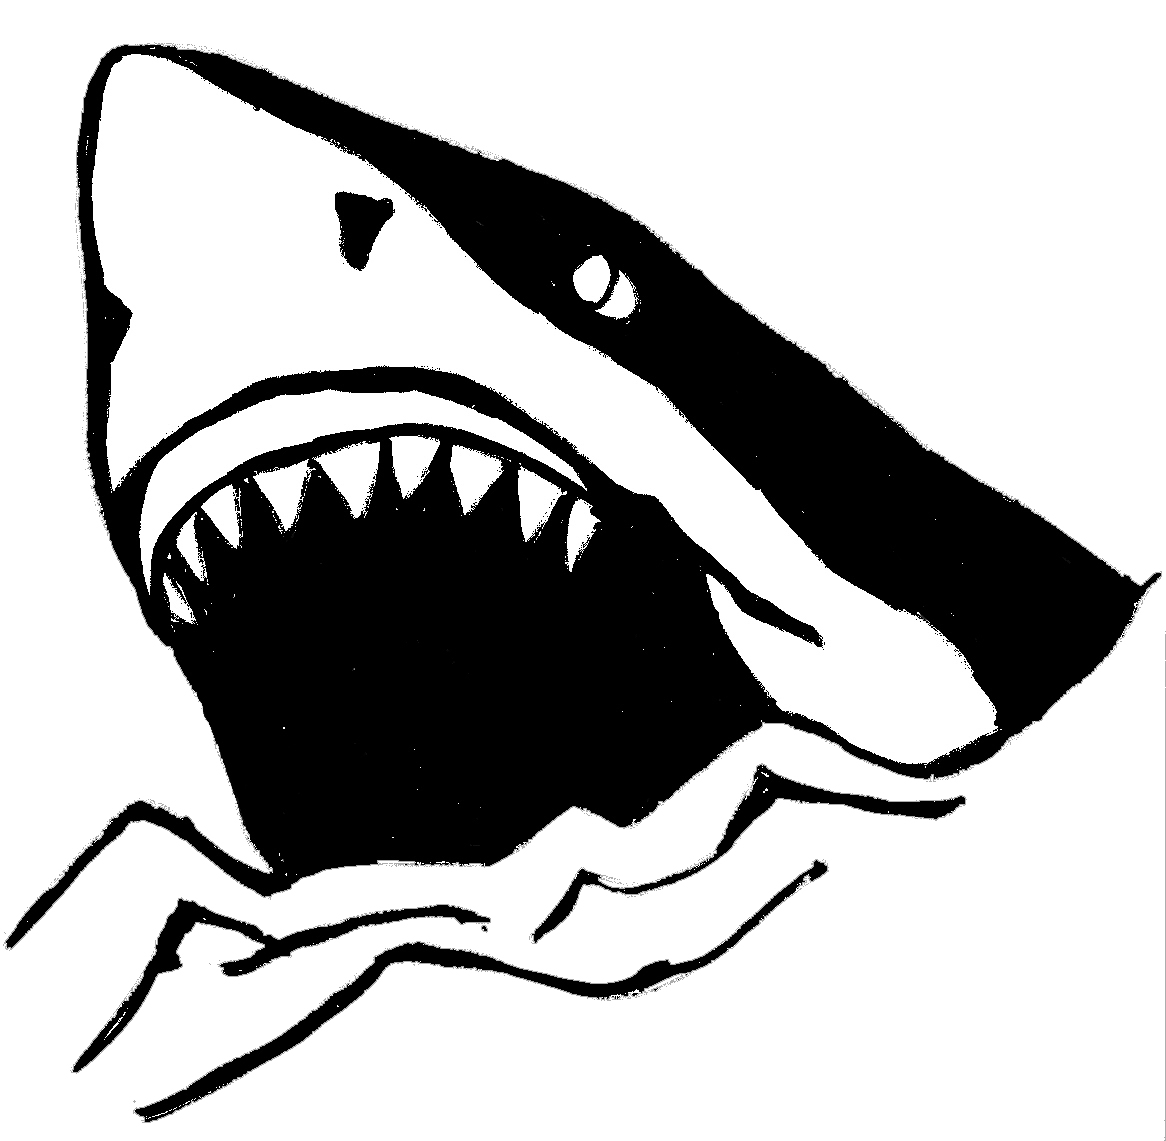 Shark Clip Art Black And White | Clipart Panda - Free ...